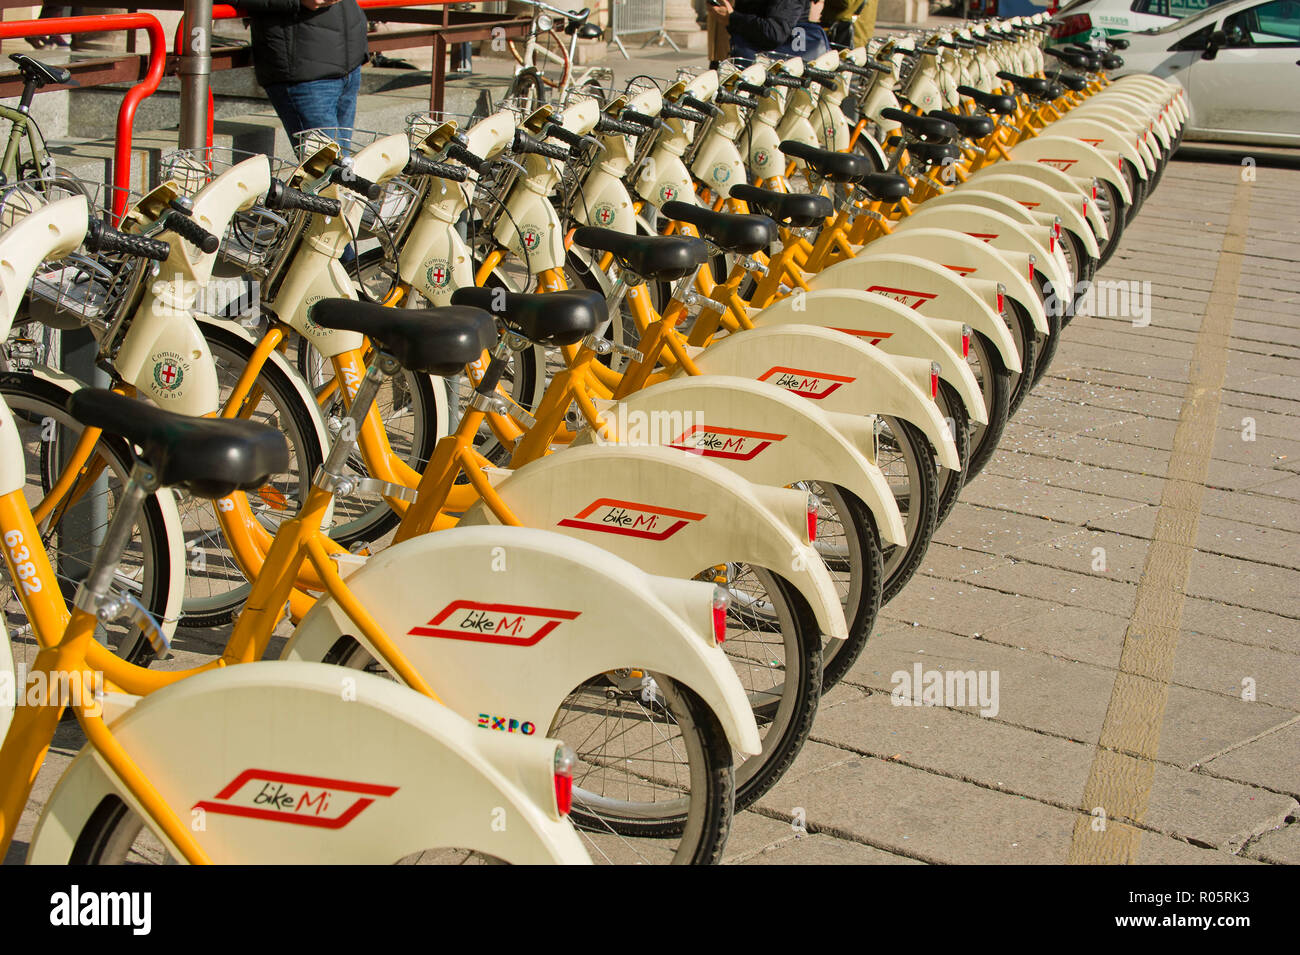 Italy, Lombardy, Milan, bike sharing in Duomo Square - Stock Image